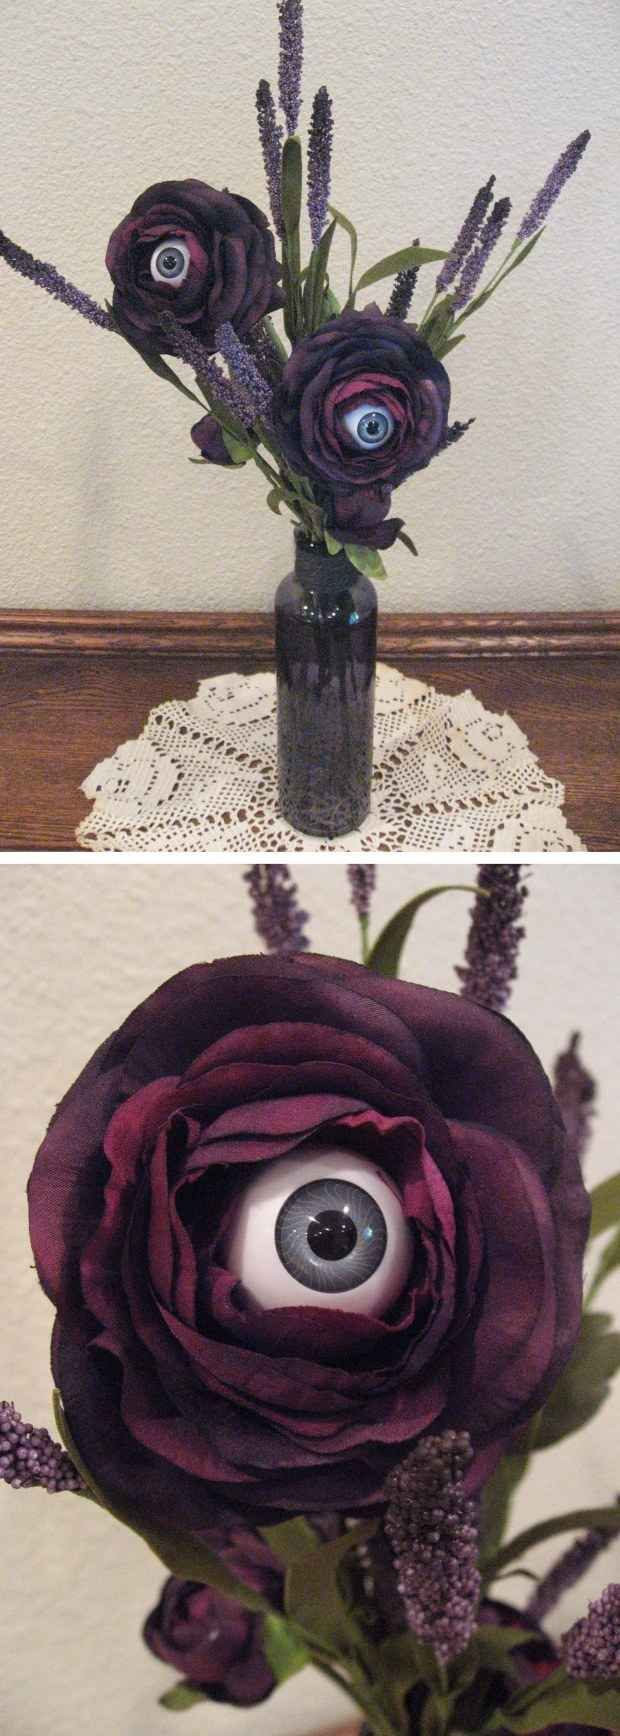 Make an eye-catching bouquet. Wfrancisdesign. Buzzfeed